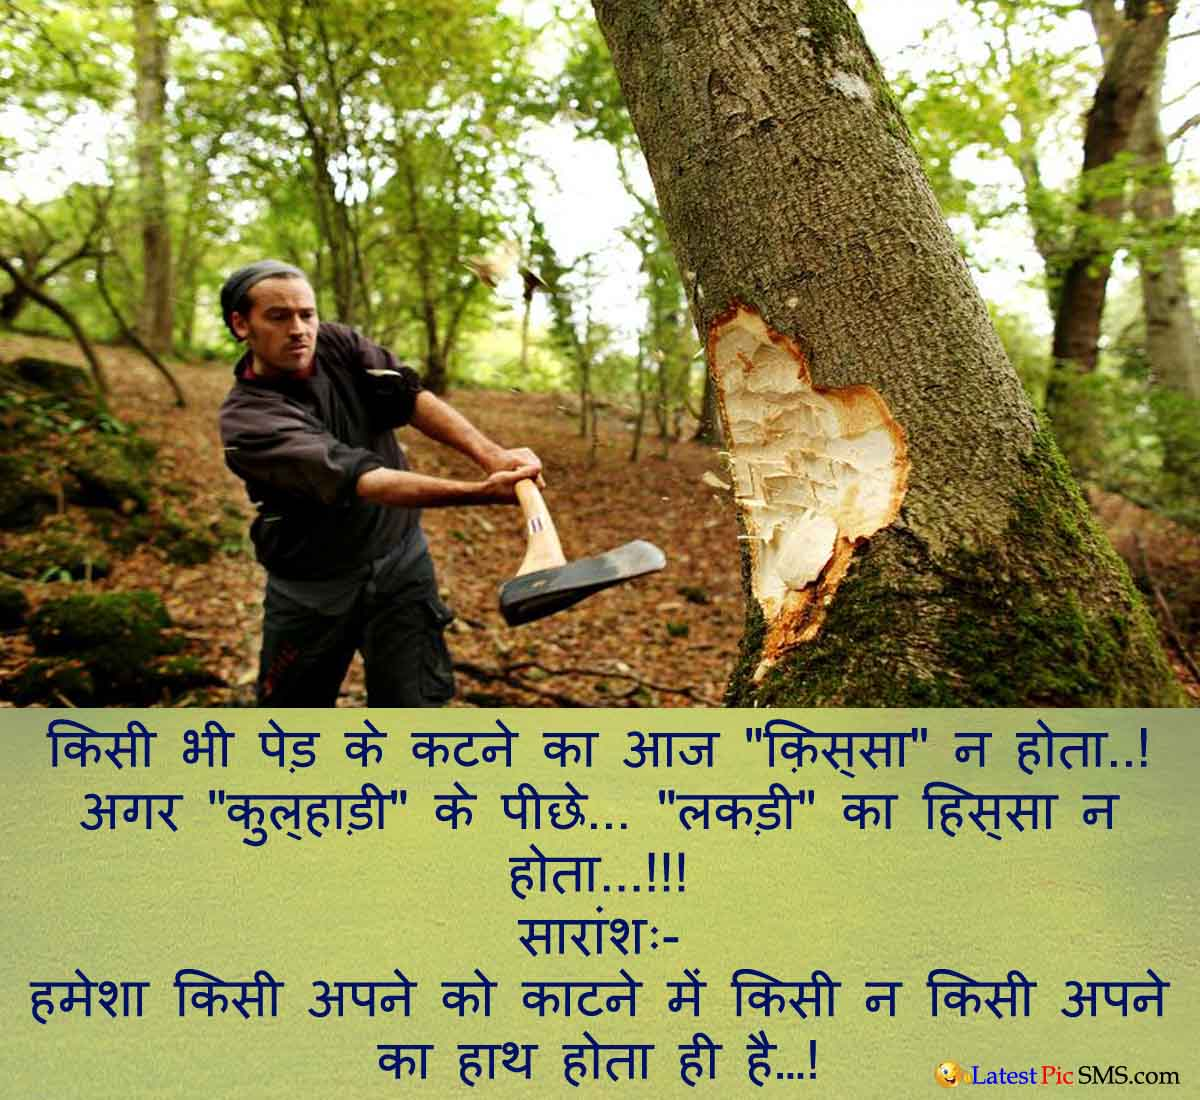 Don't Cut Tree SMS